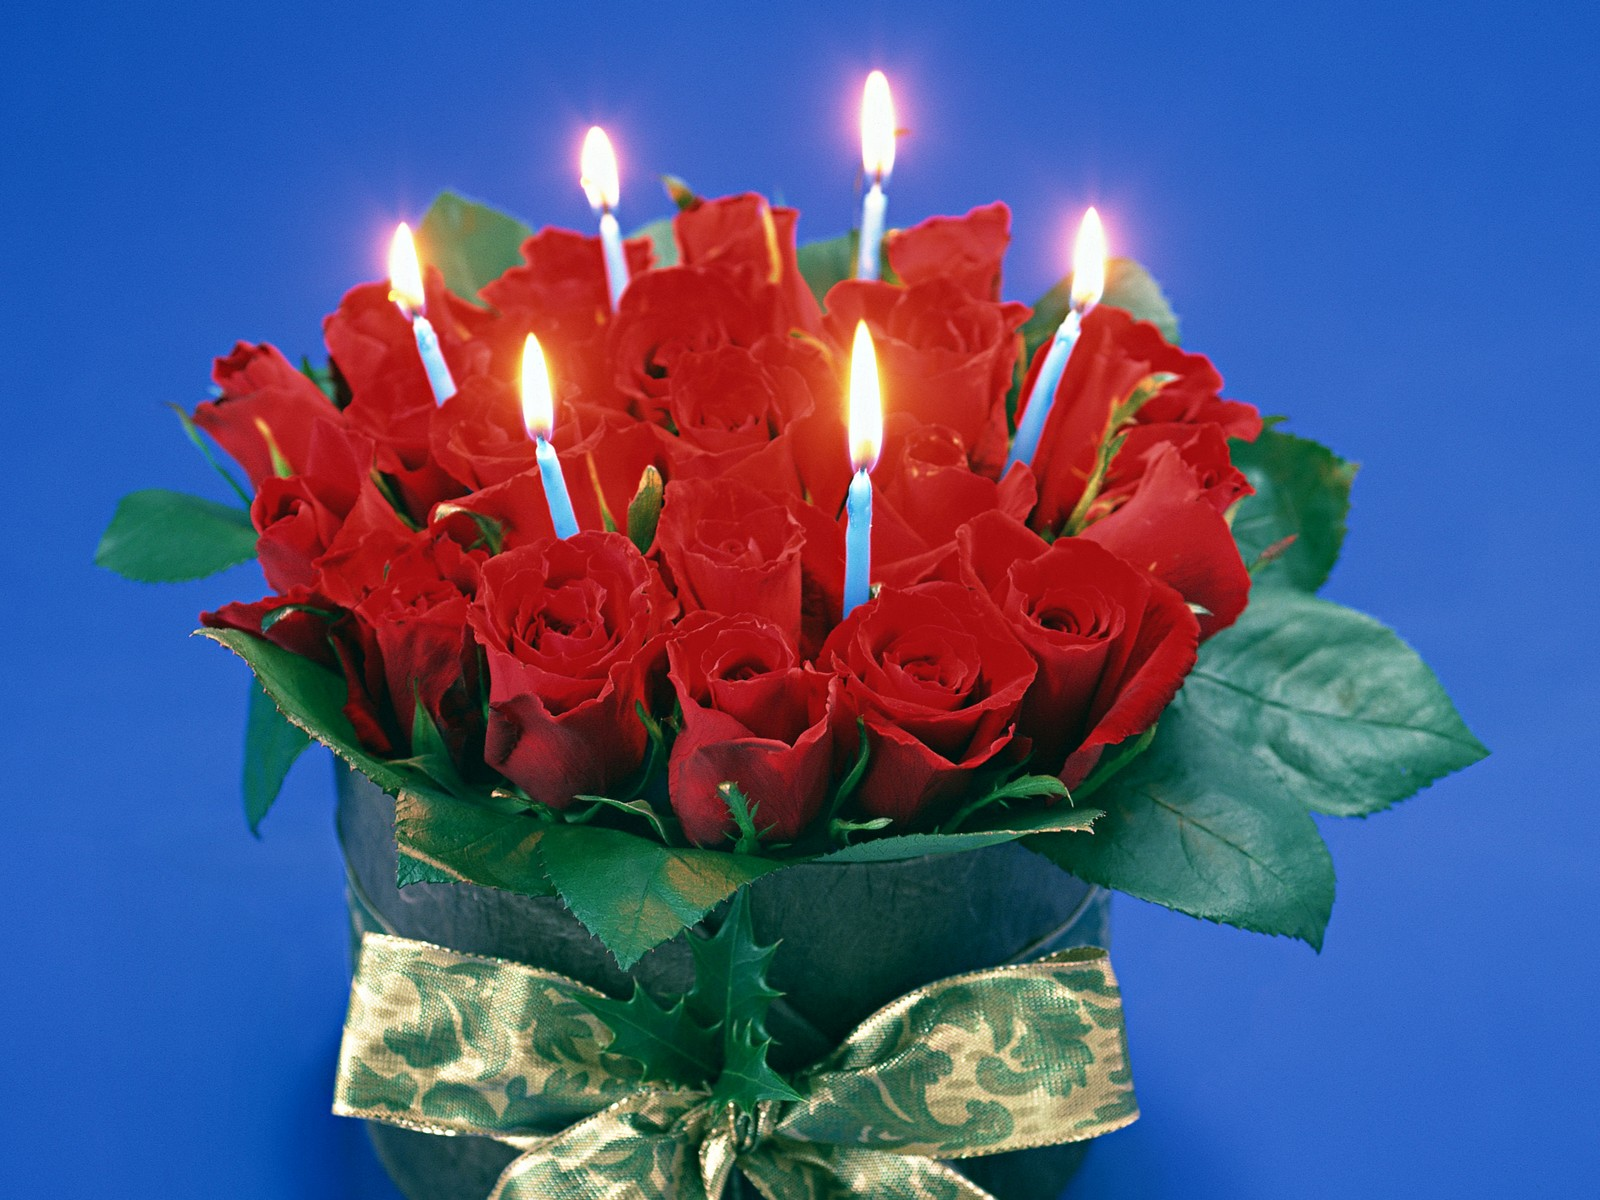 Candle Light Red Rose Flower Wallpaper